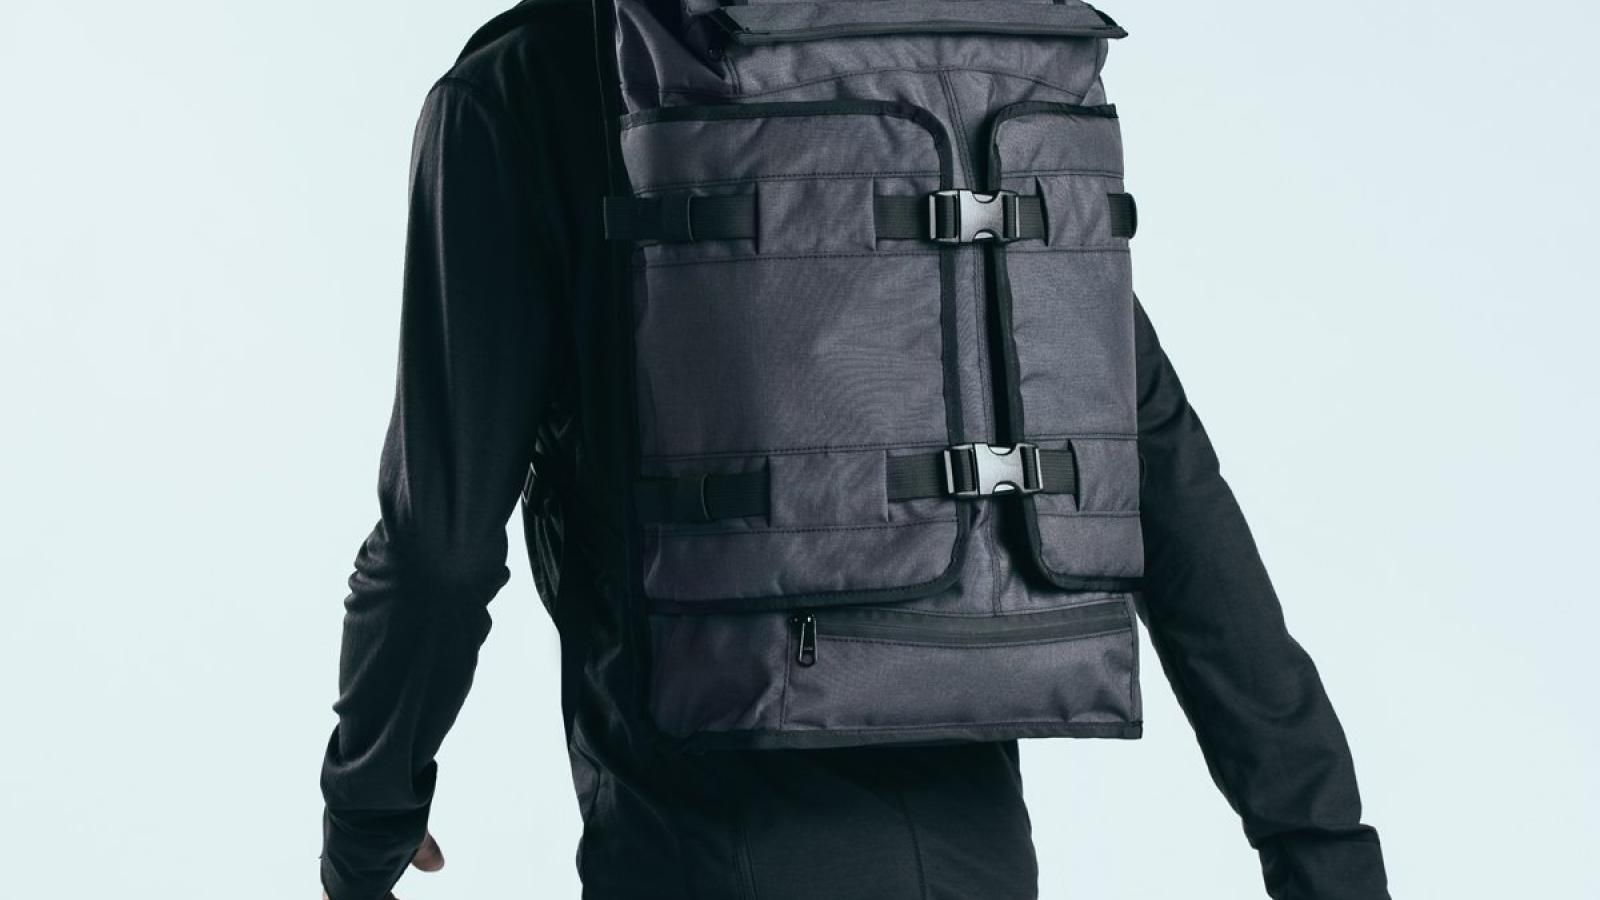 Introducing the Mission Workshop Rhake, the Weatherproof Laptop Backpack